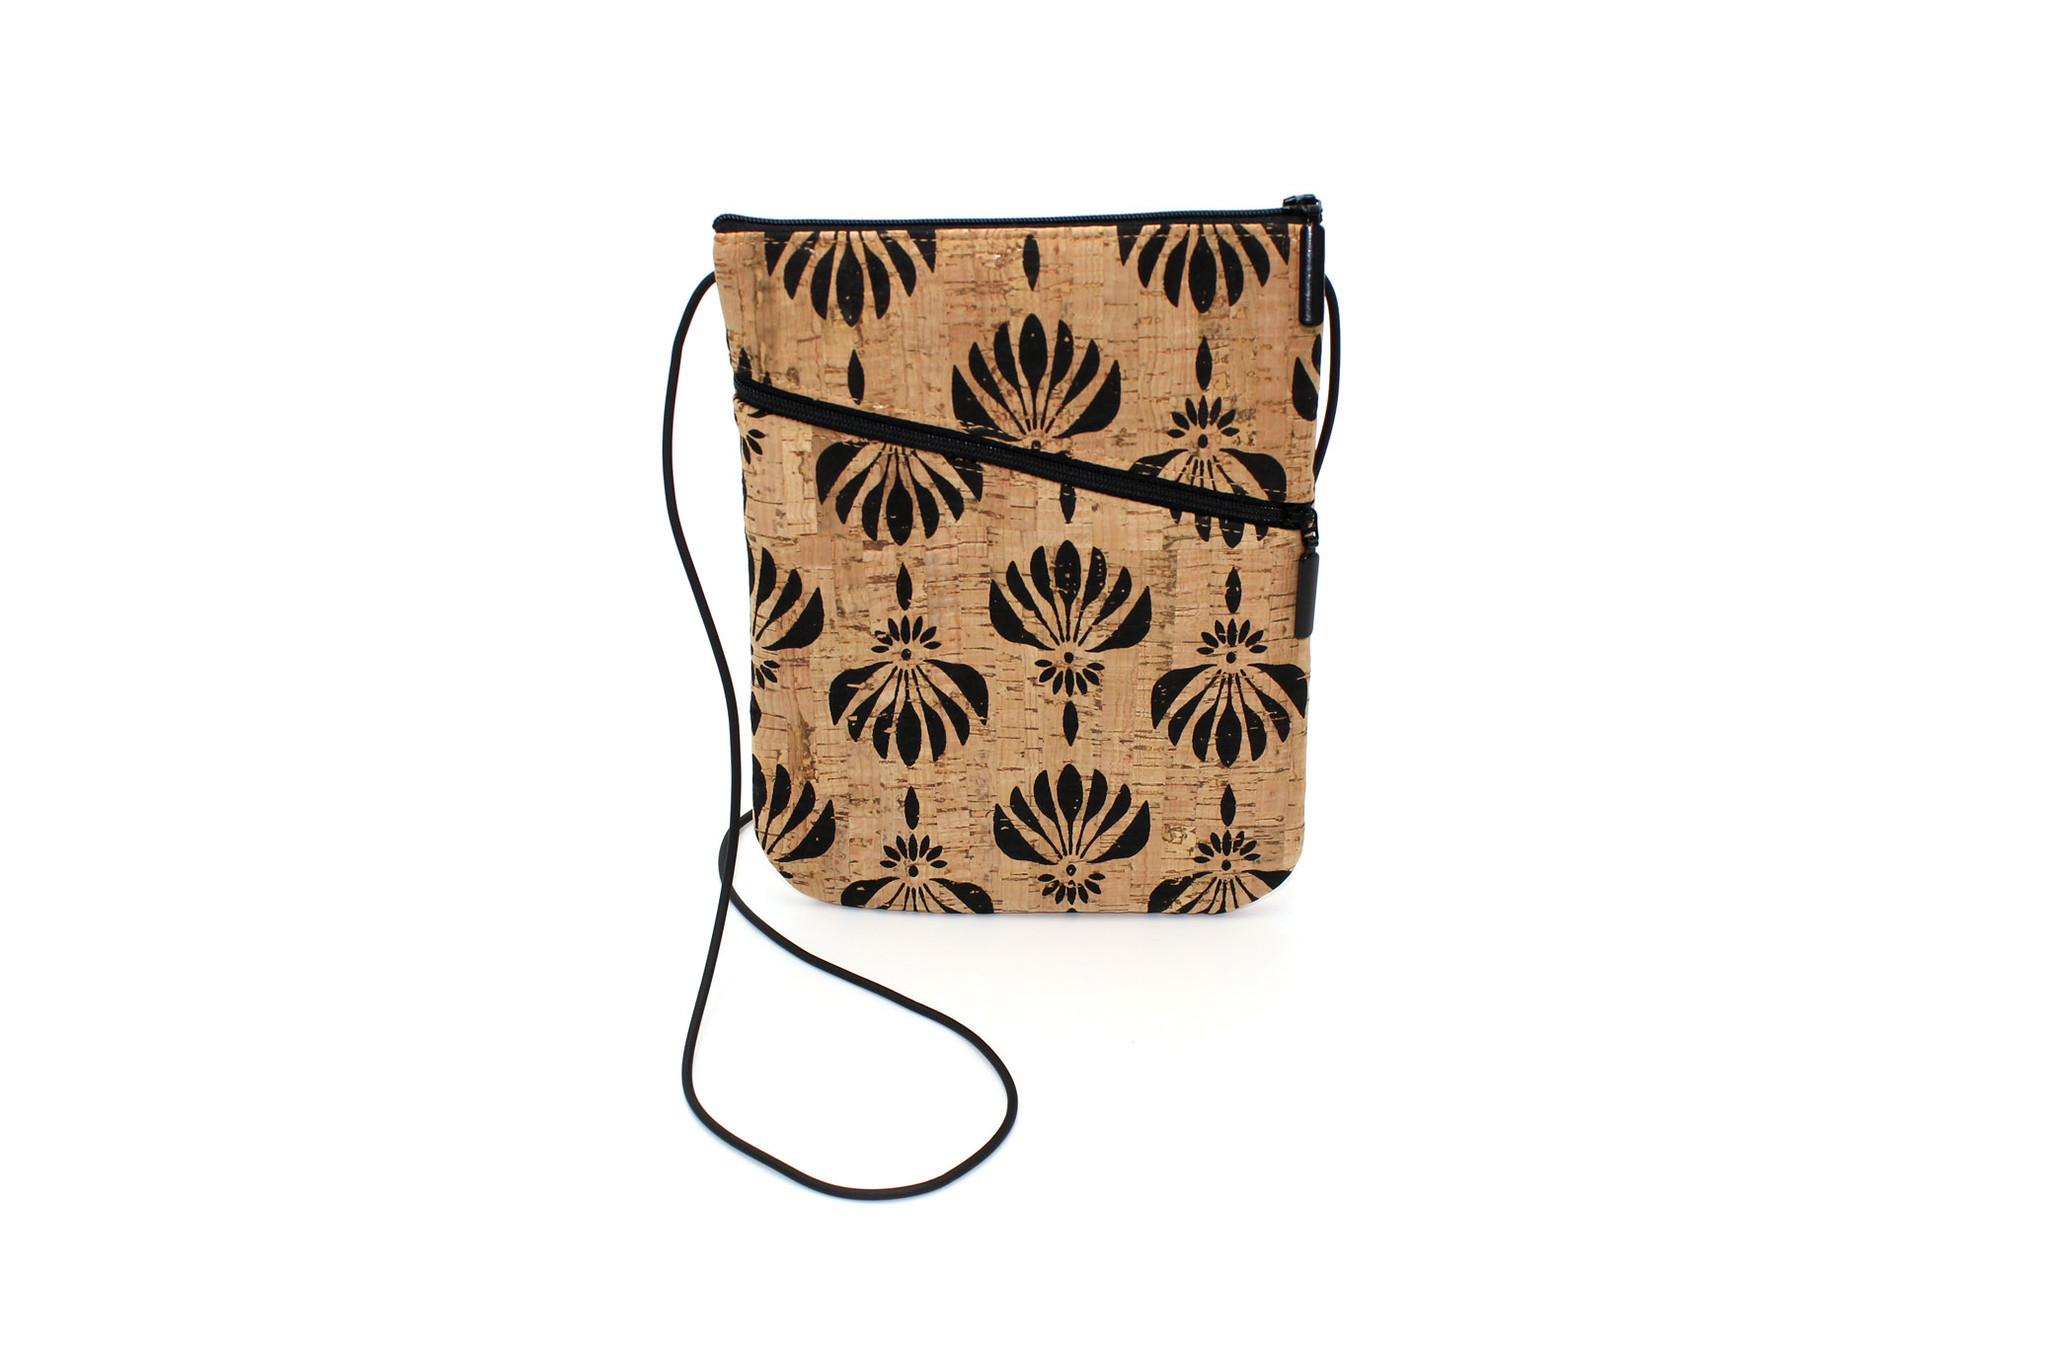 Social Bag in Black Lotus - Our Own Print !